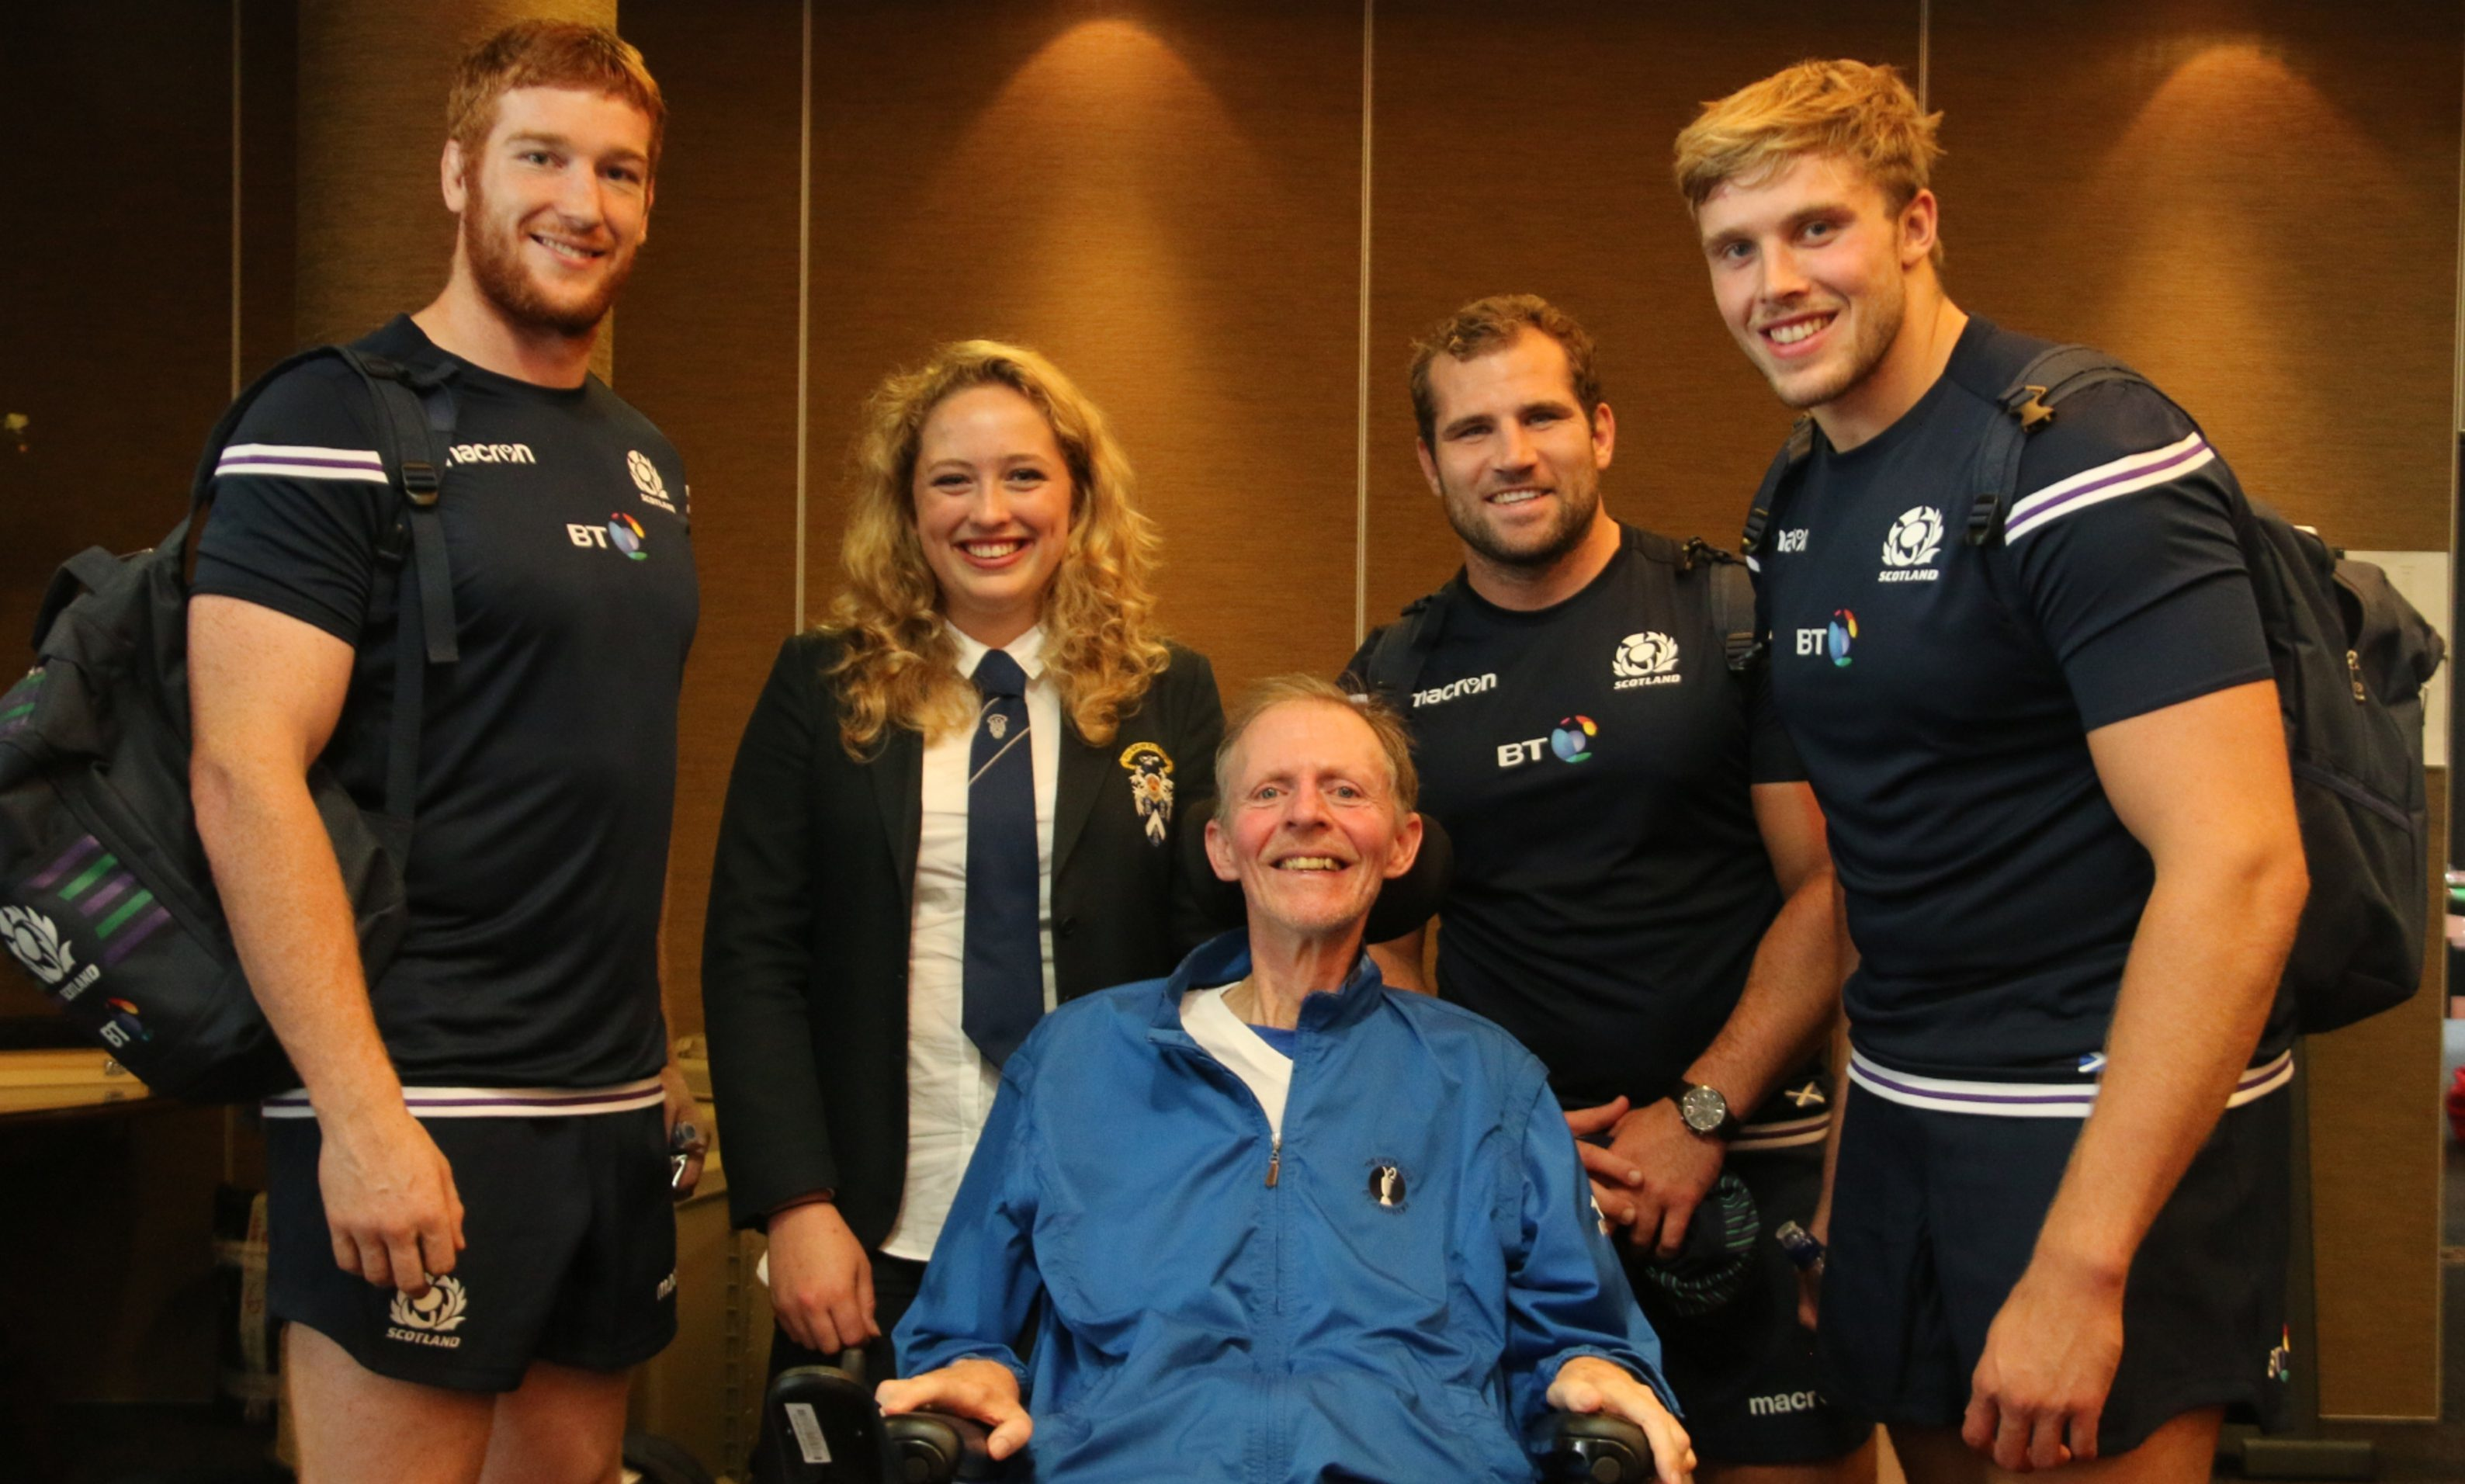 Brynja Duthie and former teacher Donald Grewar are pictured with Scottish rugby players (from left) Robert Harley, Fraser Brown and Jonny Gray